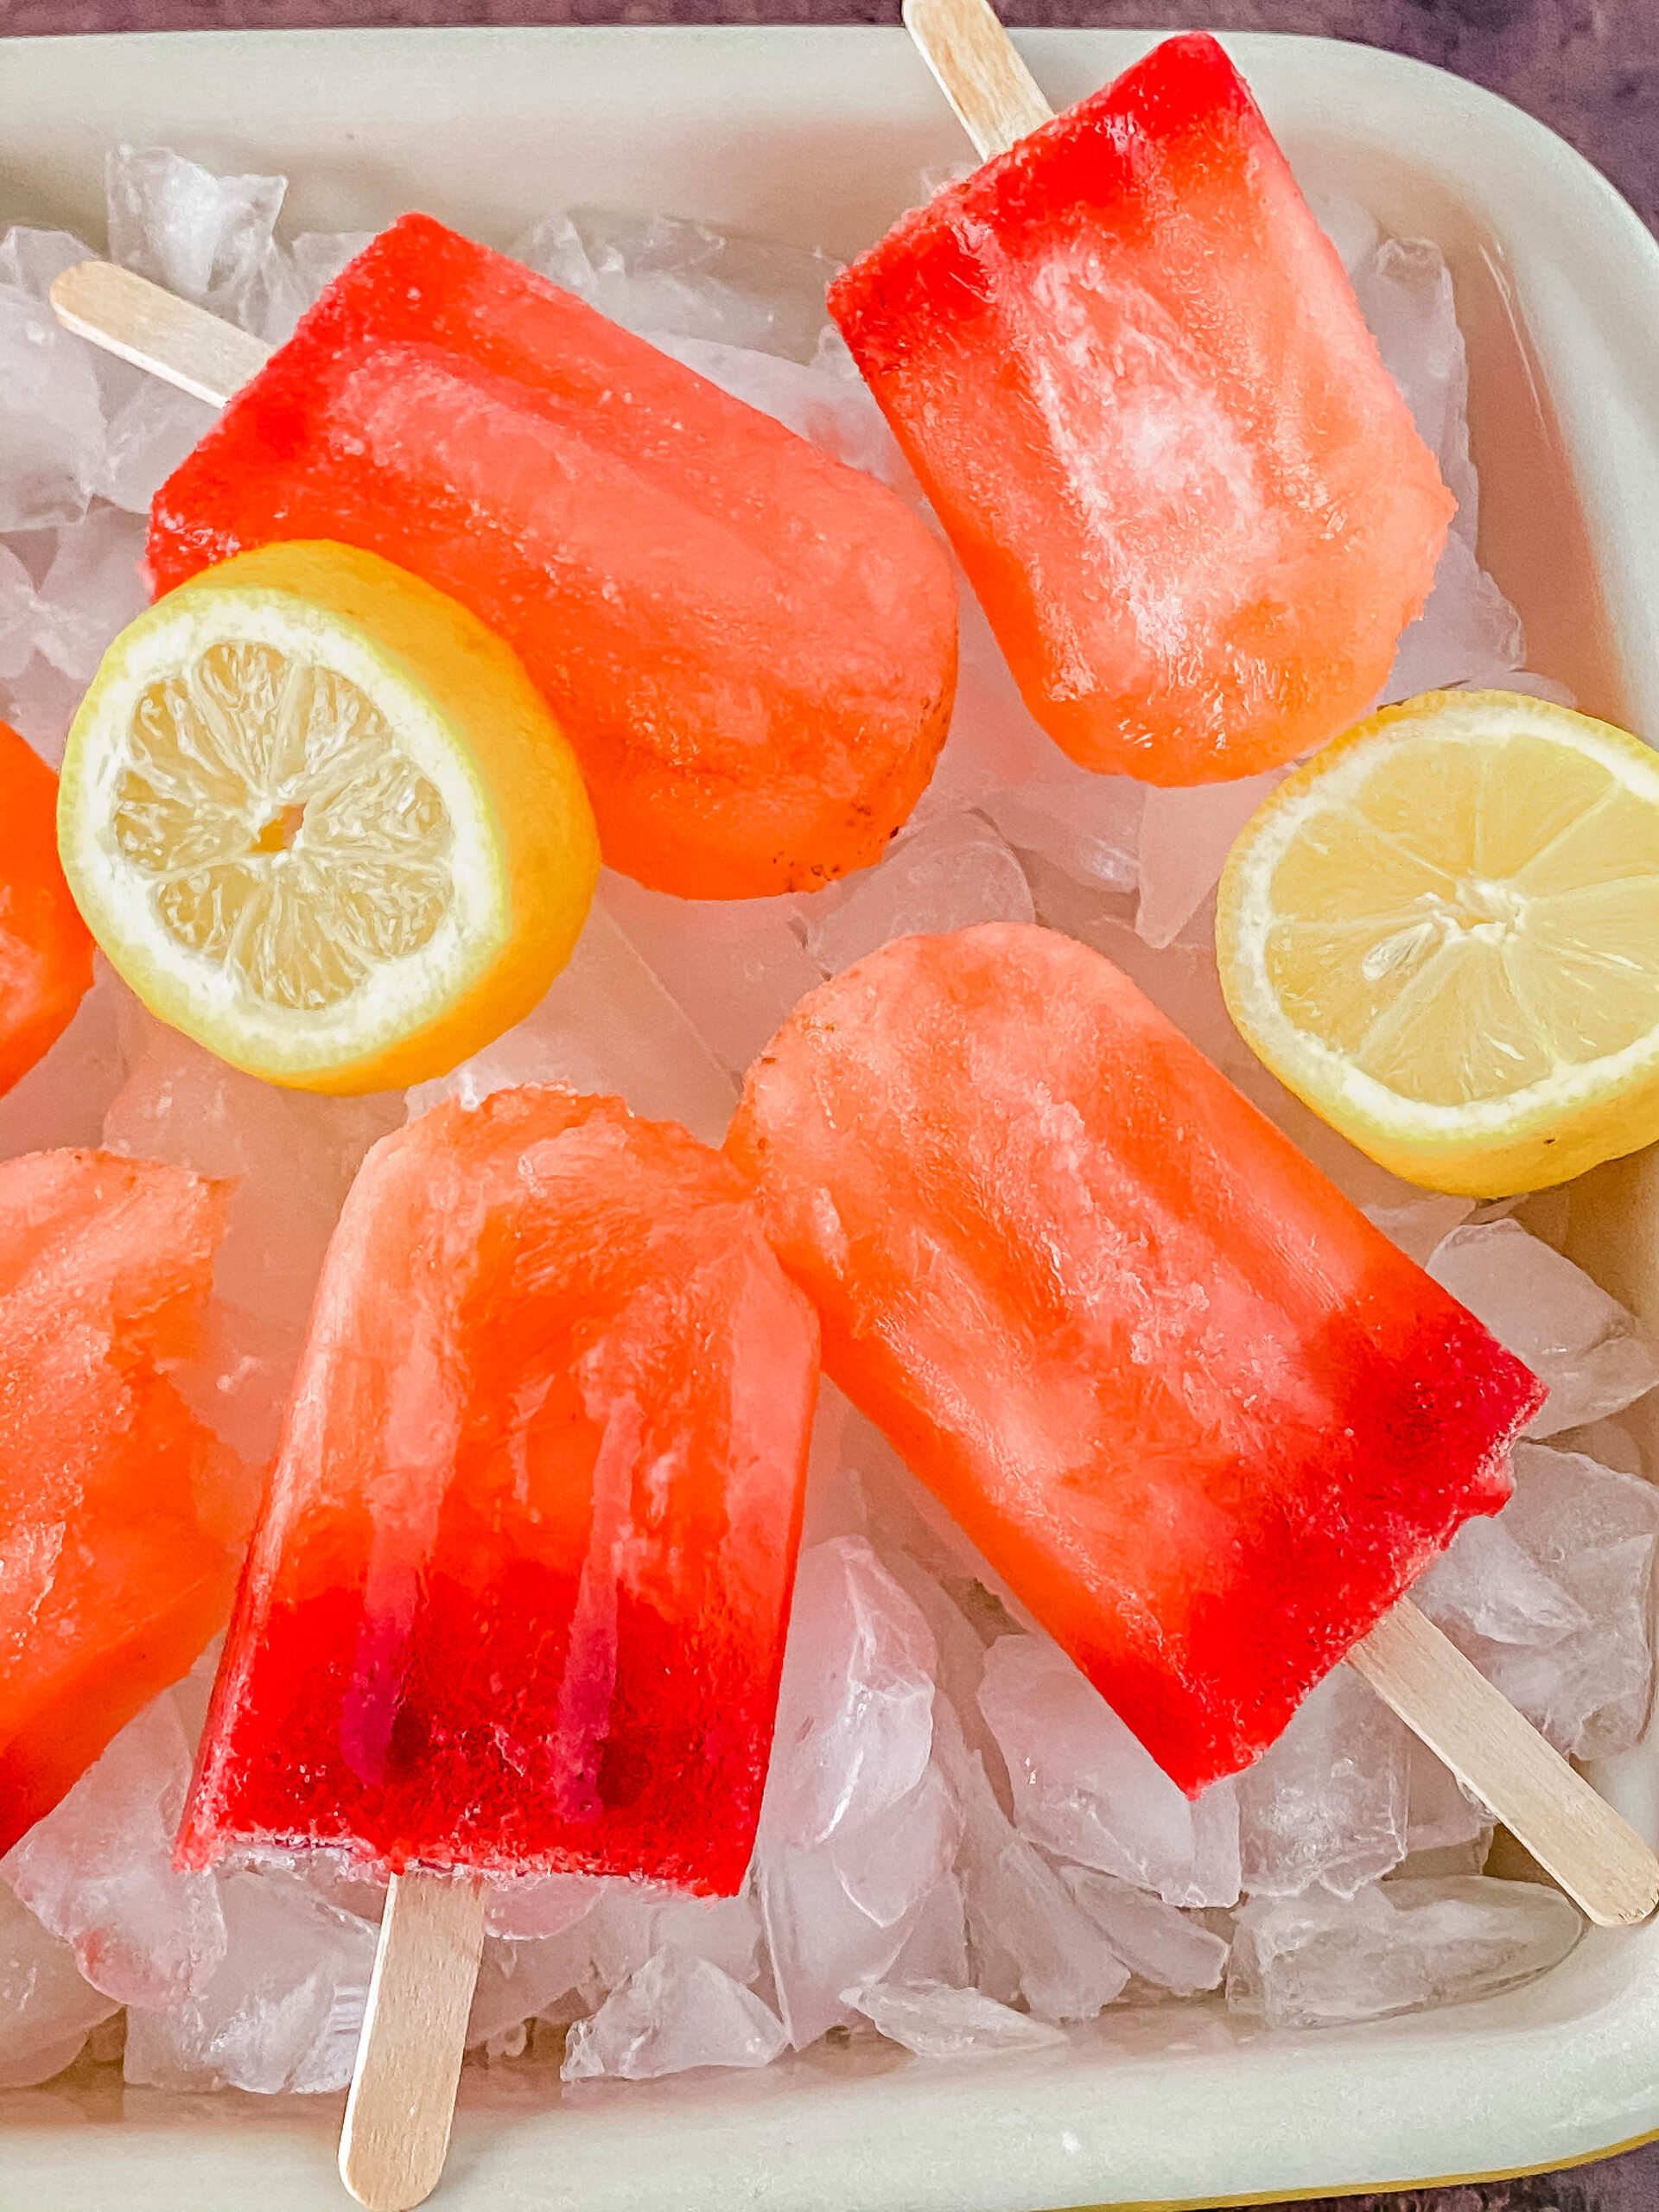 Looking for a fun and easy recipe to make this summer? These strawberry lemonade popsicles are delicious and are perfect for warm weather!